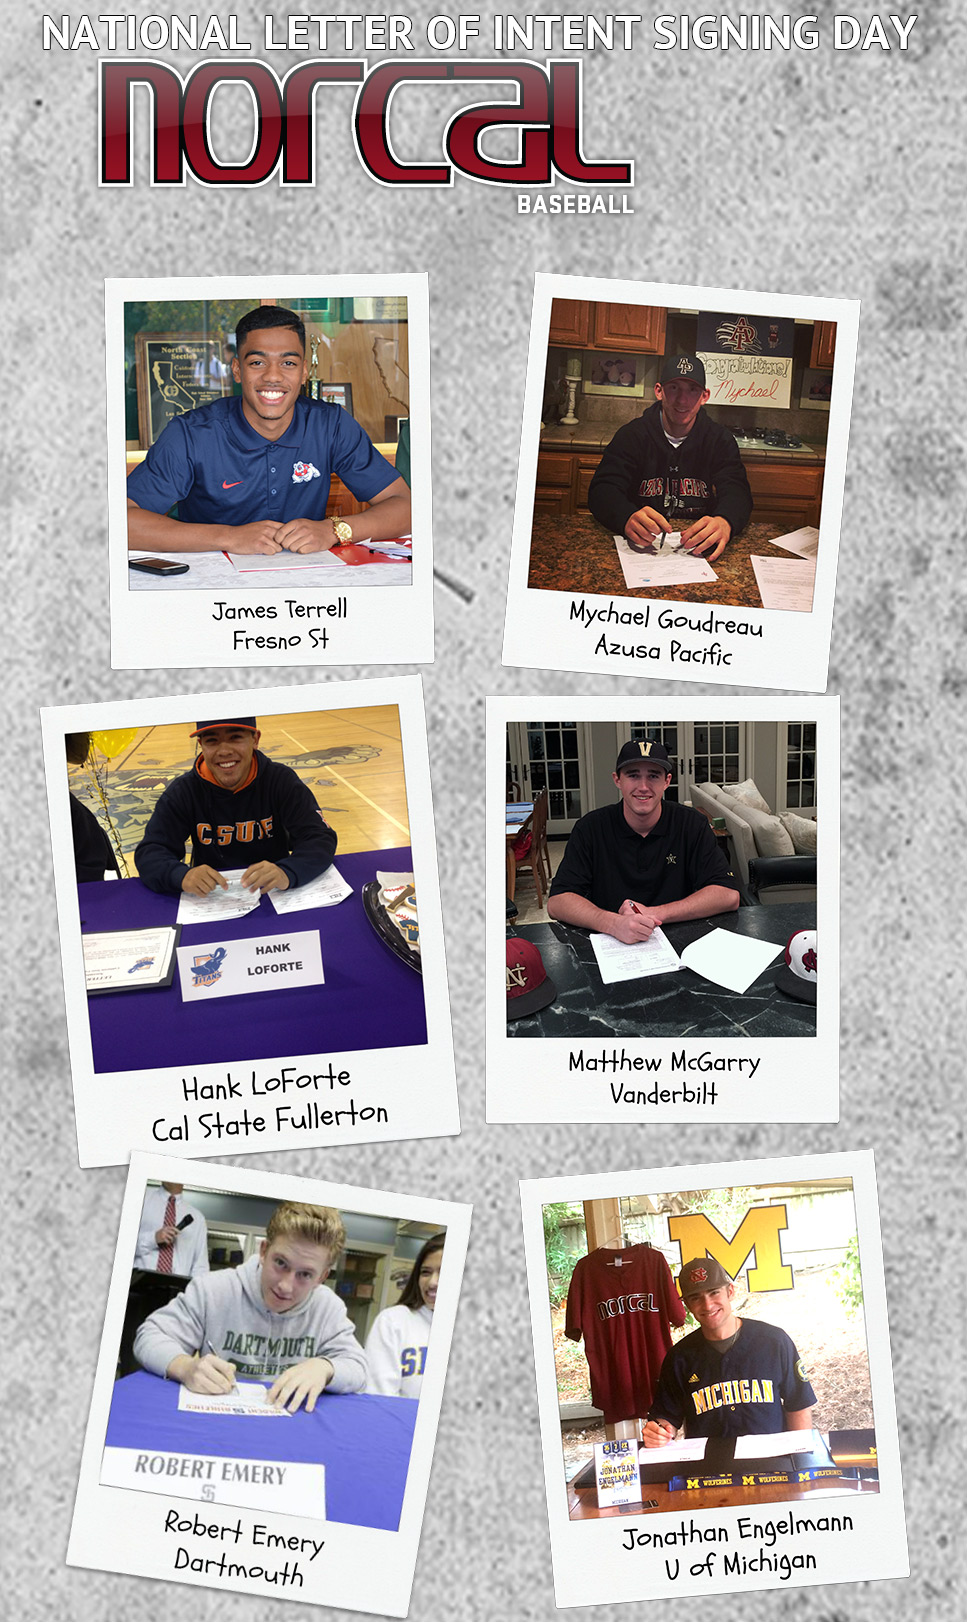 We are proud to present the NorCal Baseball 2015 National Letter of Intent Signees. Congrats to these fine gentlemen for taking the next step in their baseball and academic careers.